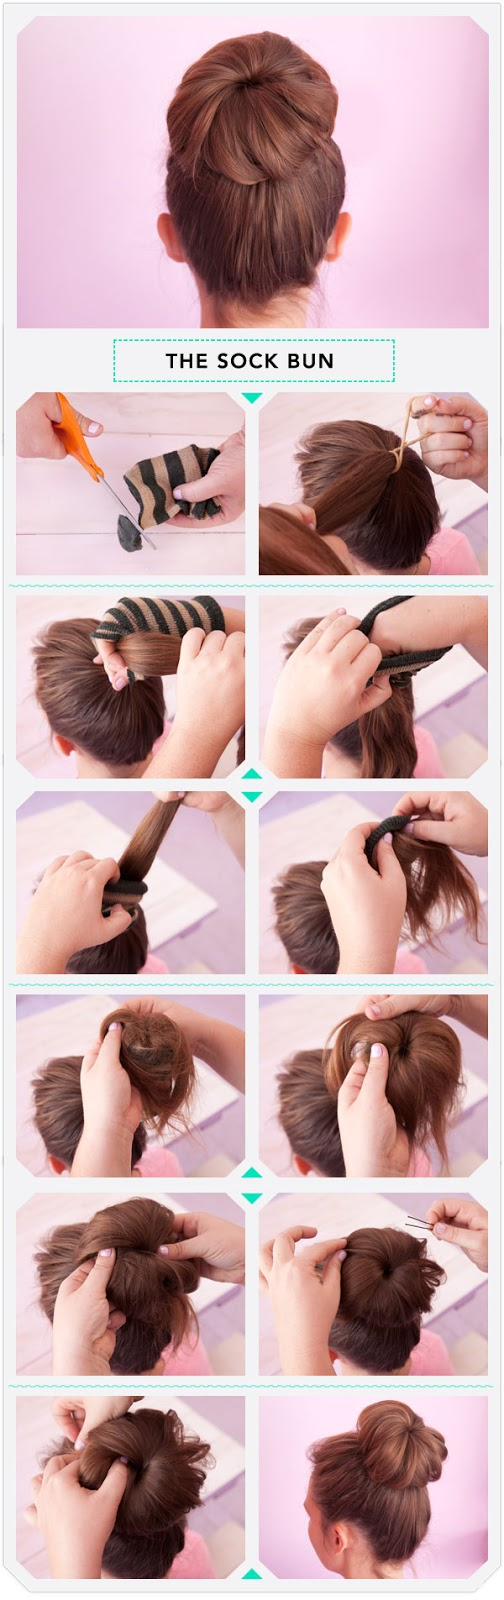 How to create sock bun